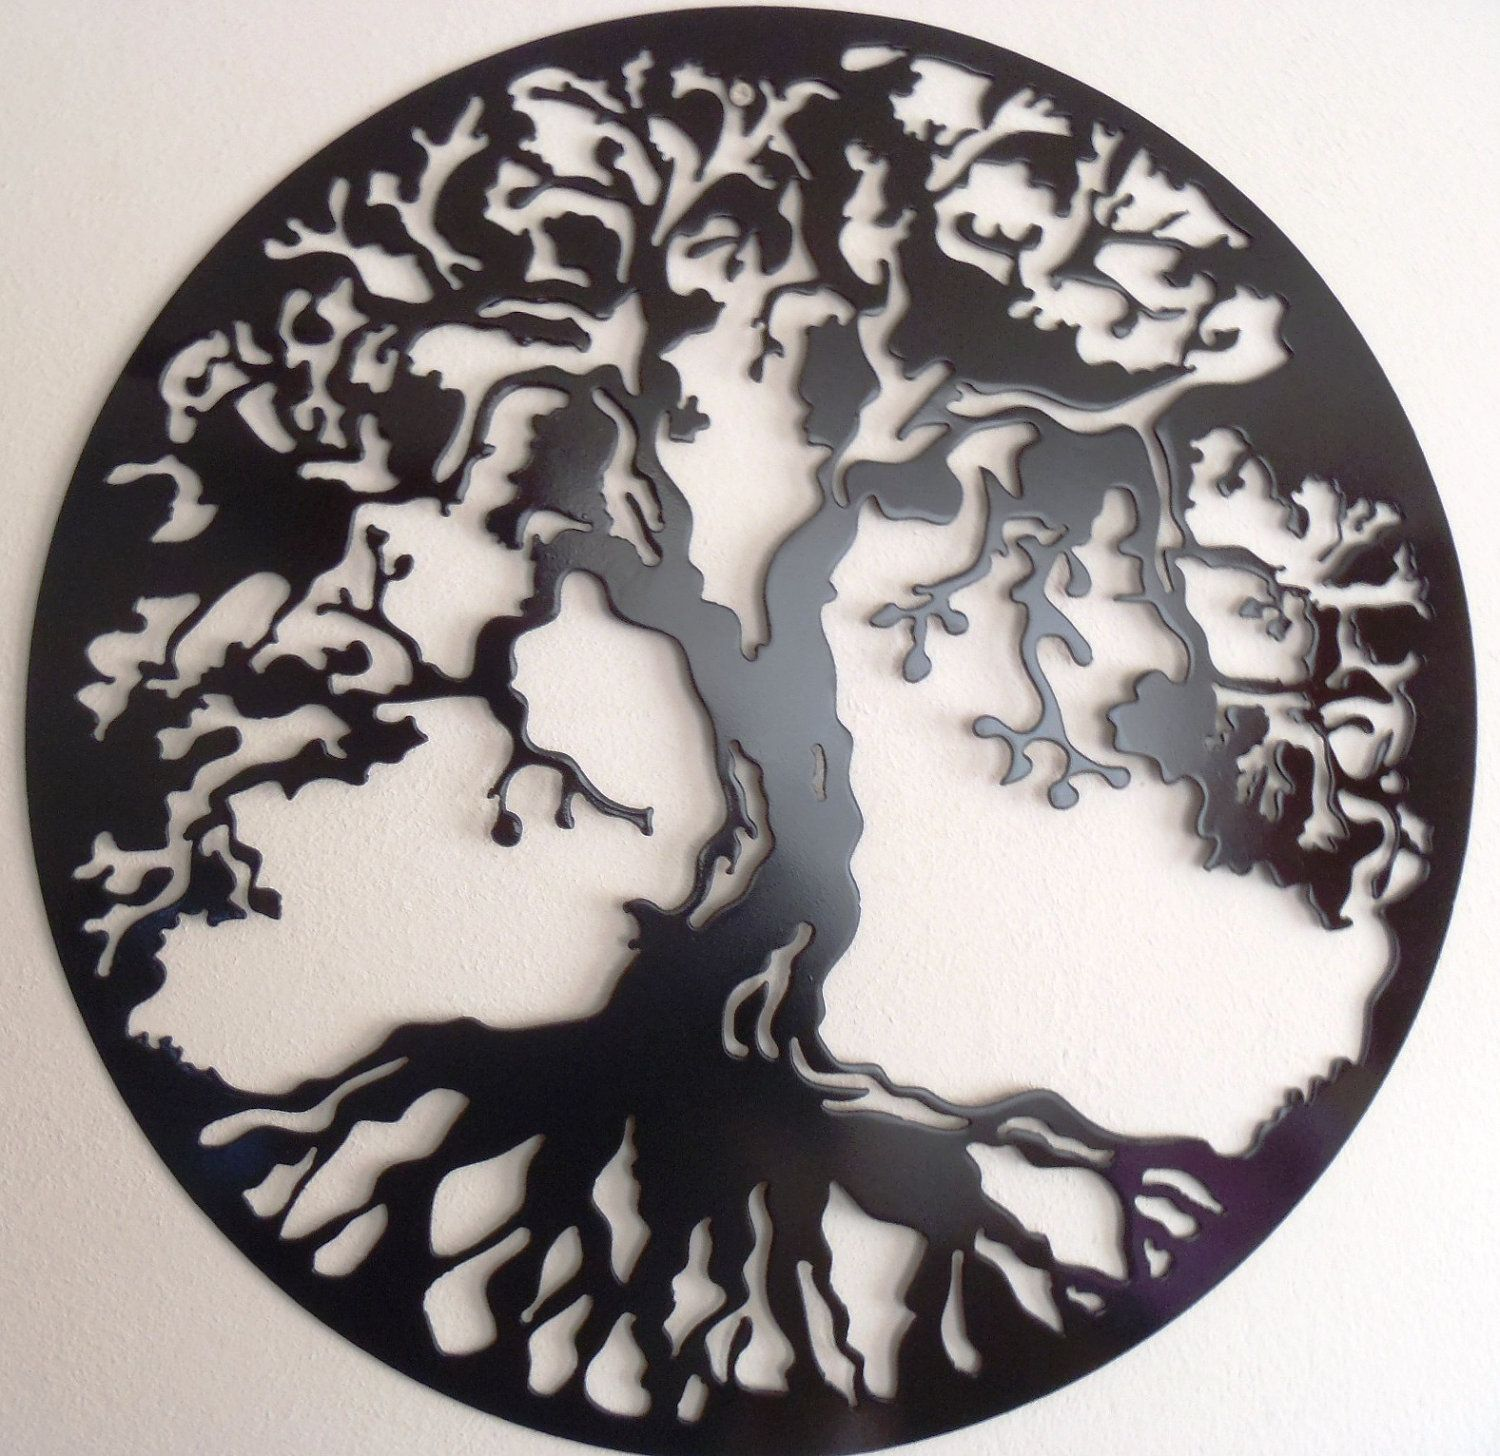 Tree Of Life Wall Art Tree Of Life Large Wall Decor Metal Art  Black$32.00 Via